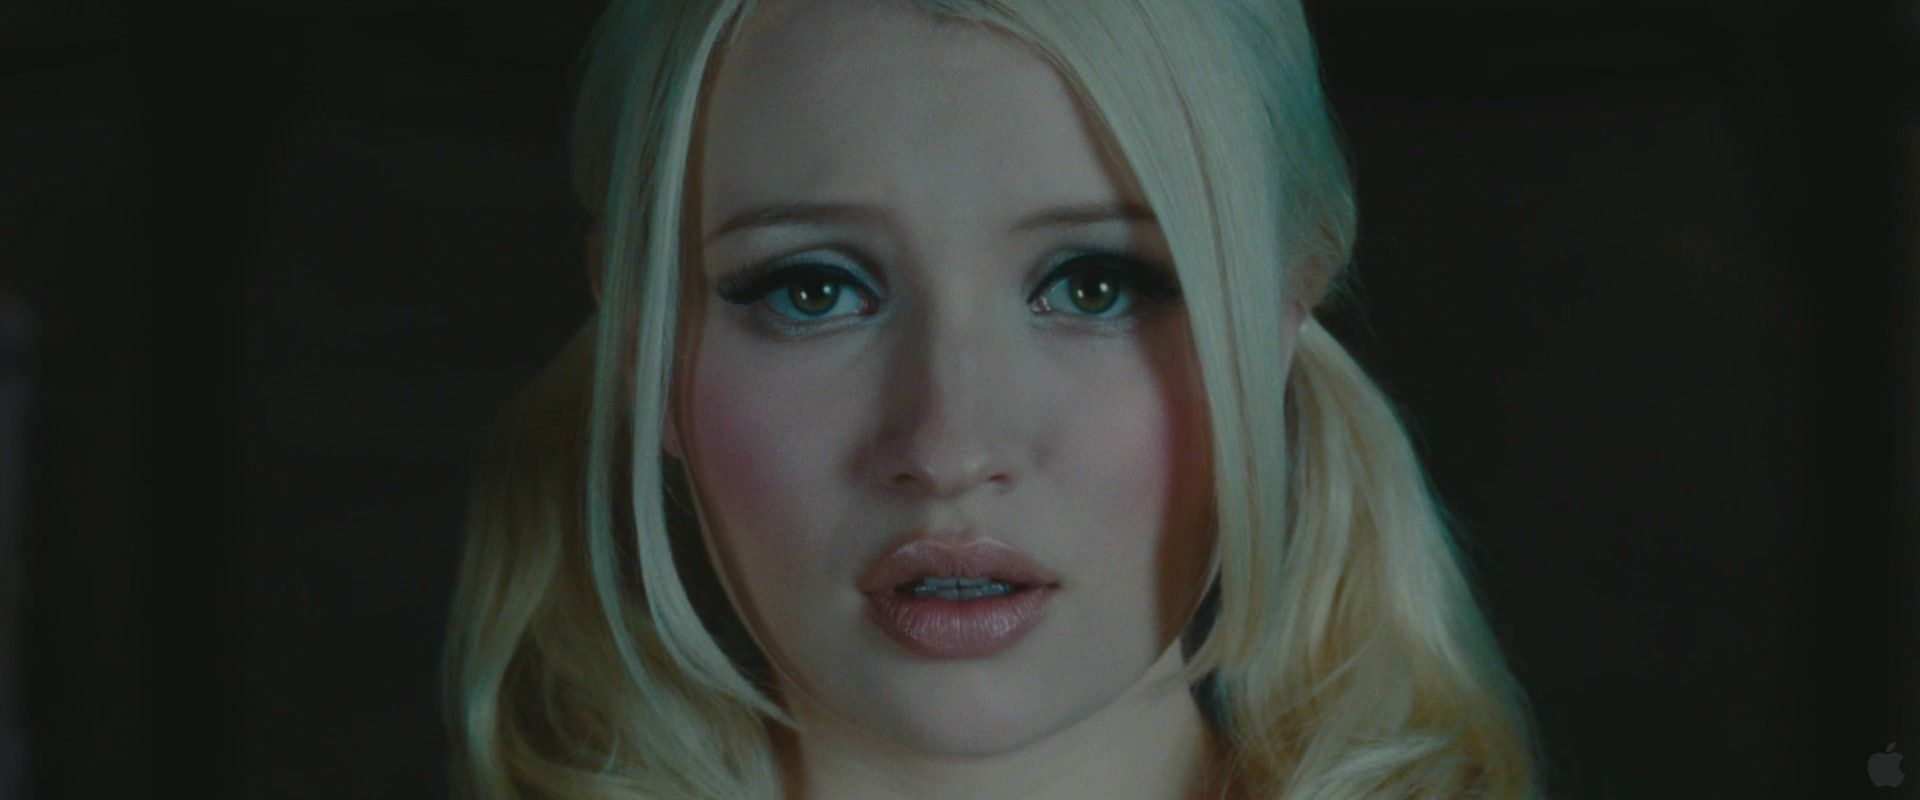 punch sucker Emily browning